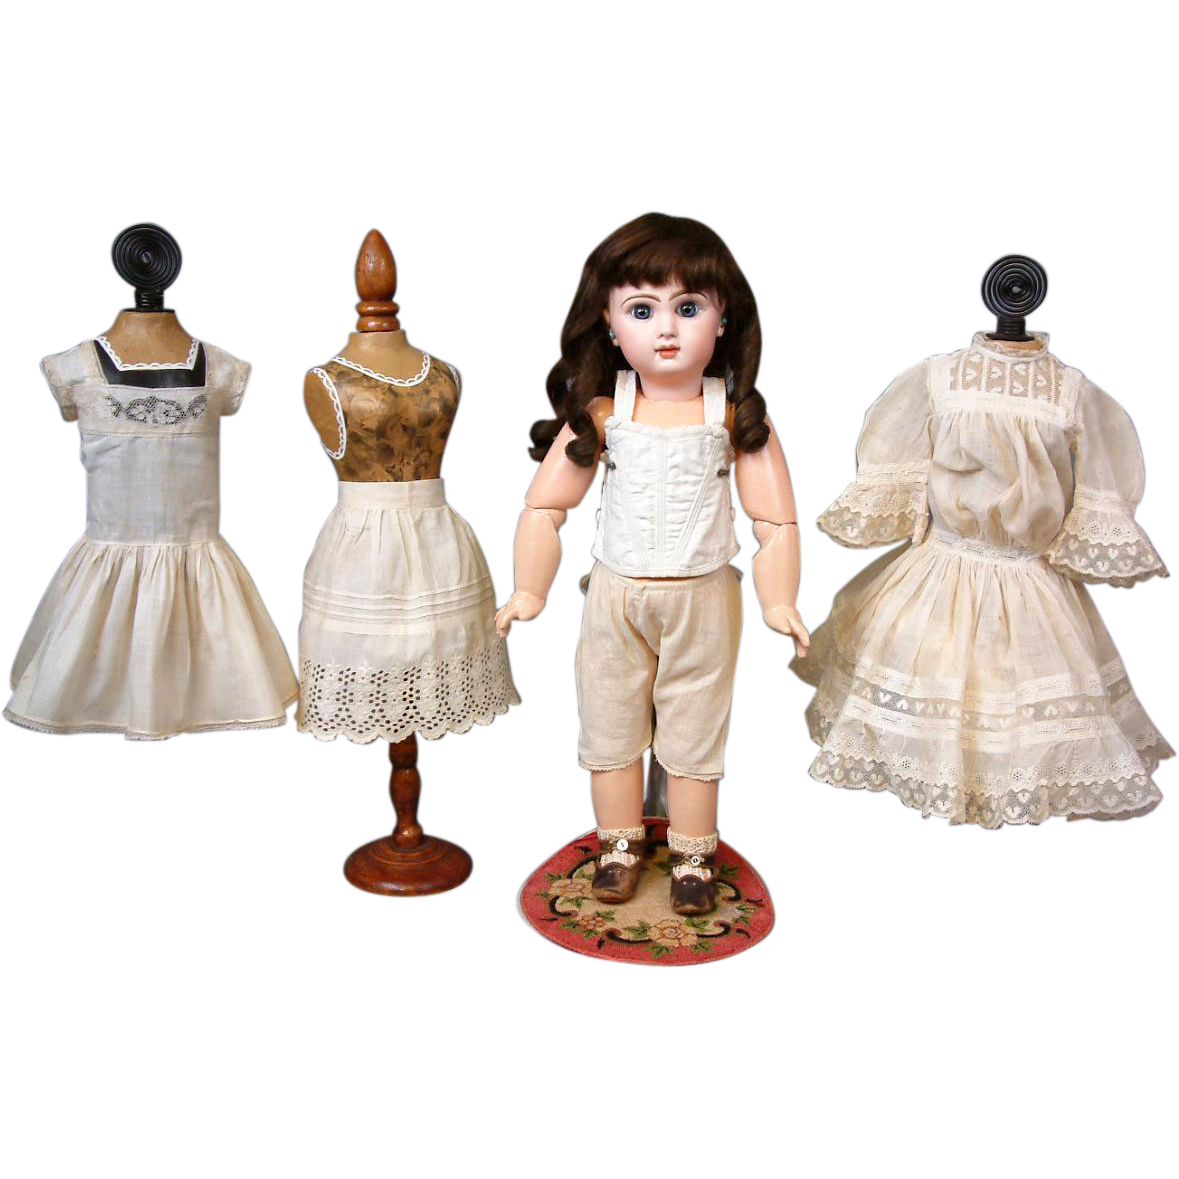 5-Piece Antique Original Bebe Costume w/Dress, 2 Slips, Corset, and Pantaloons FABULOUS CONDITION!